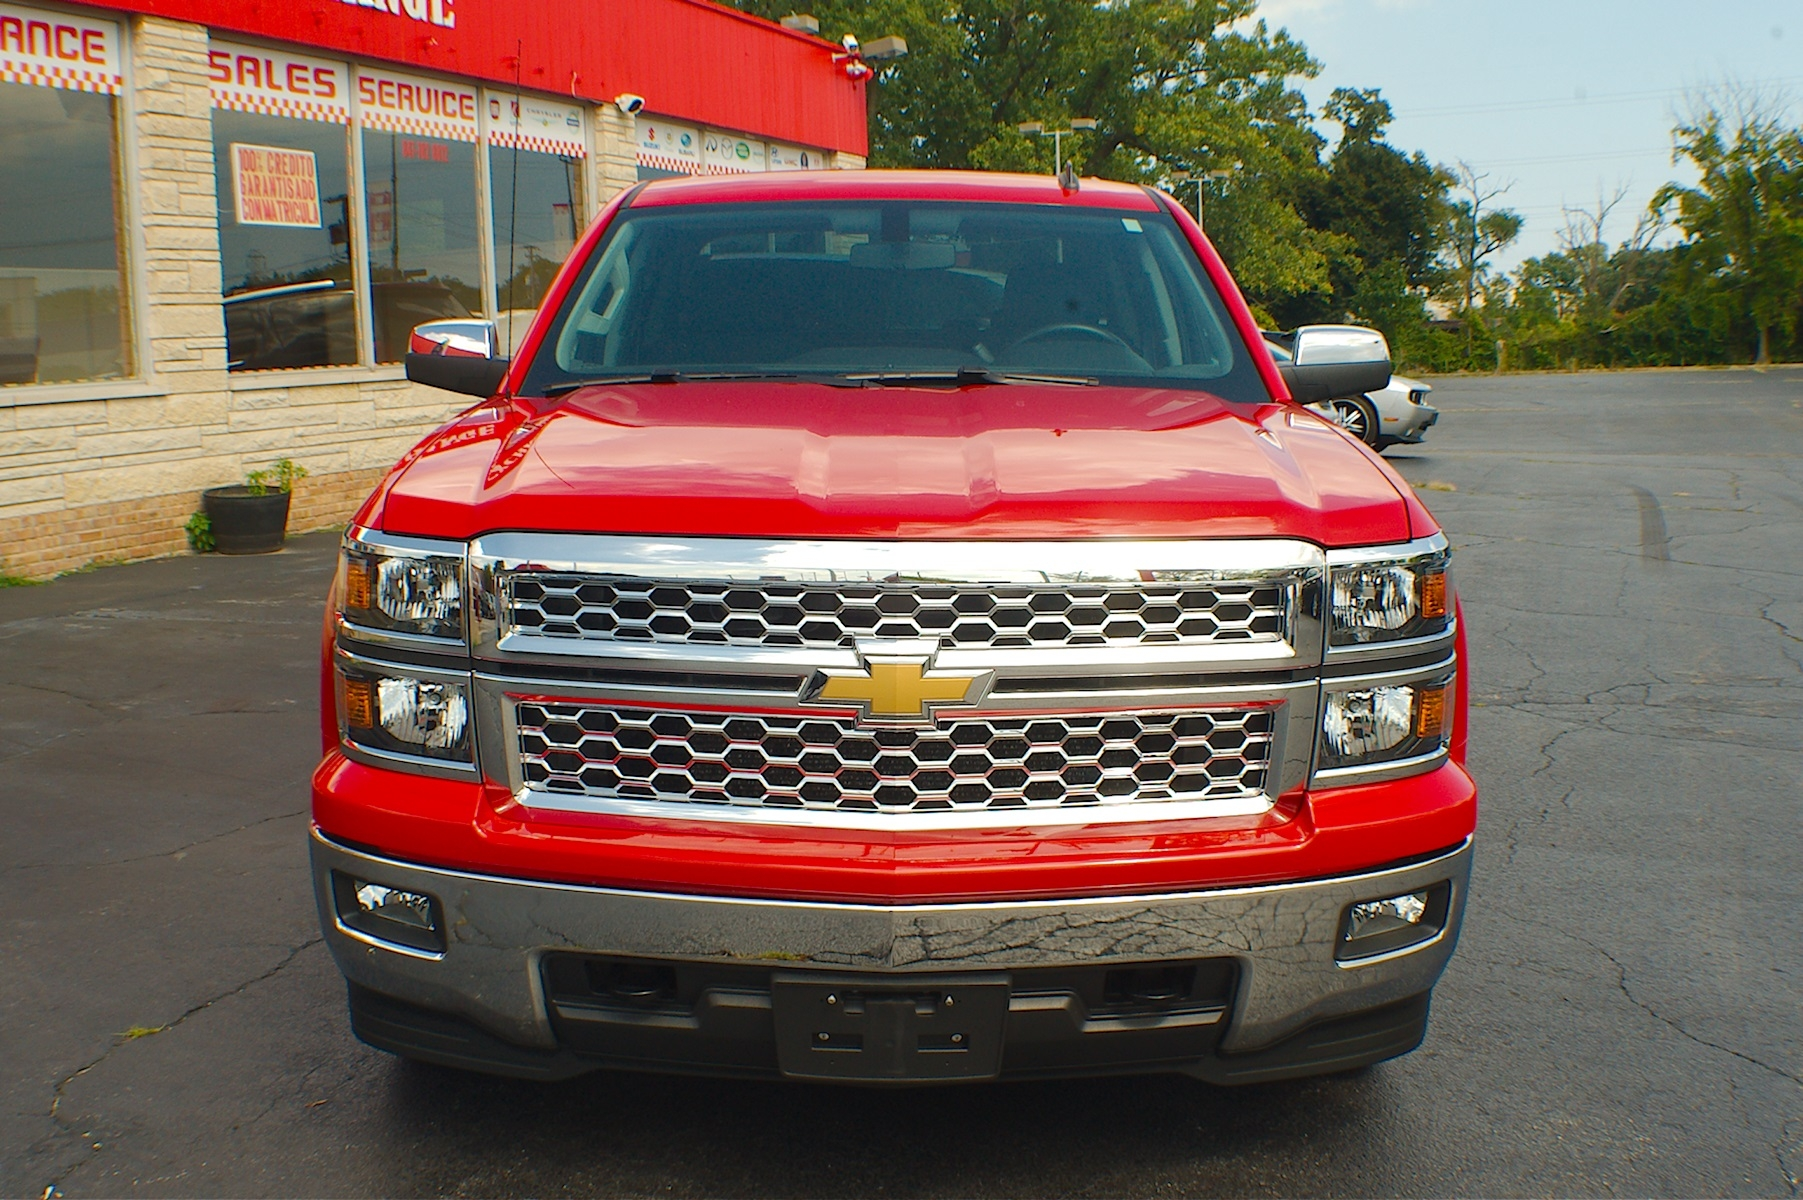 2014 Chevrolet Silverado LT Red Used Pickup Truck Sale Gurnee Kenosha Mchenry Chicago Illinois